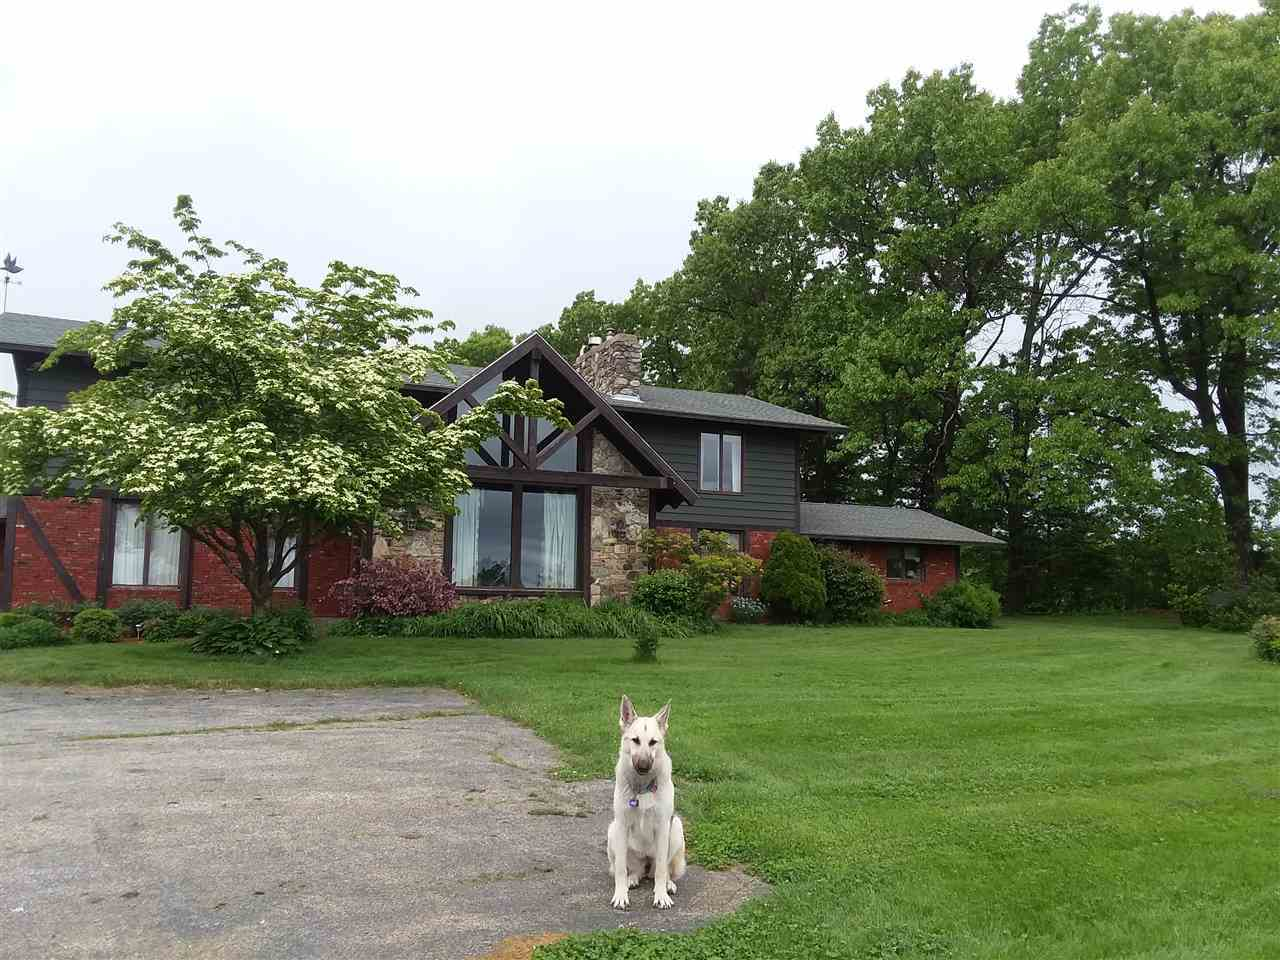 4 bed / 3 full, 2 partial baths Home in Hollis for $999,900